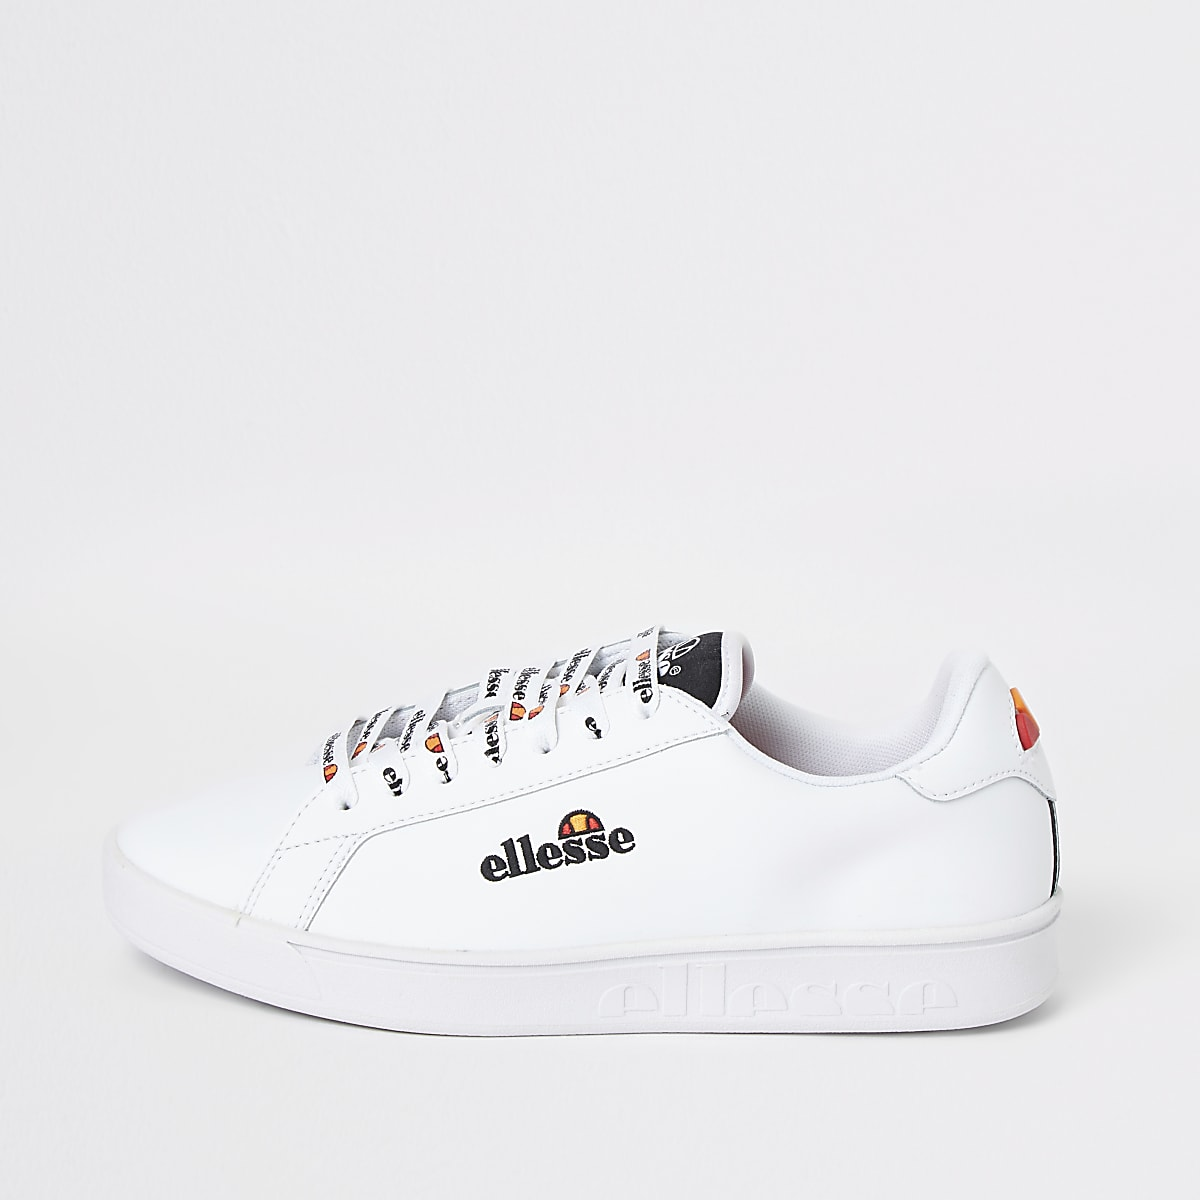 Ellesse – Campo – Baskets blanches brodées